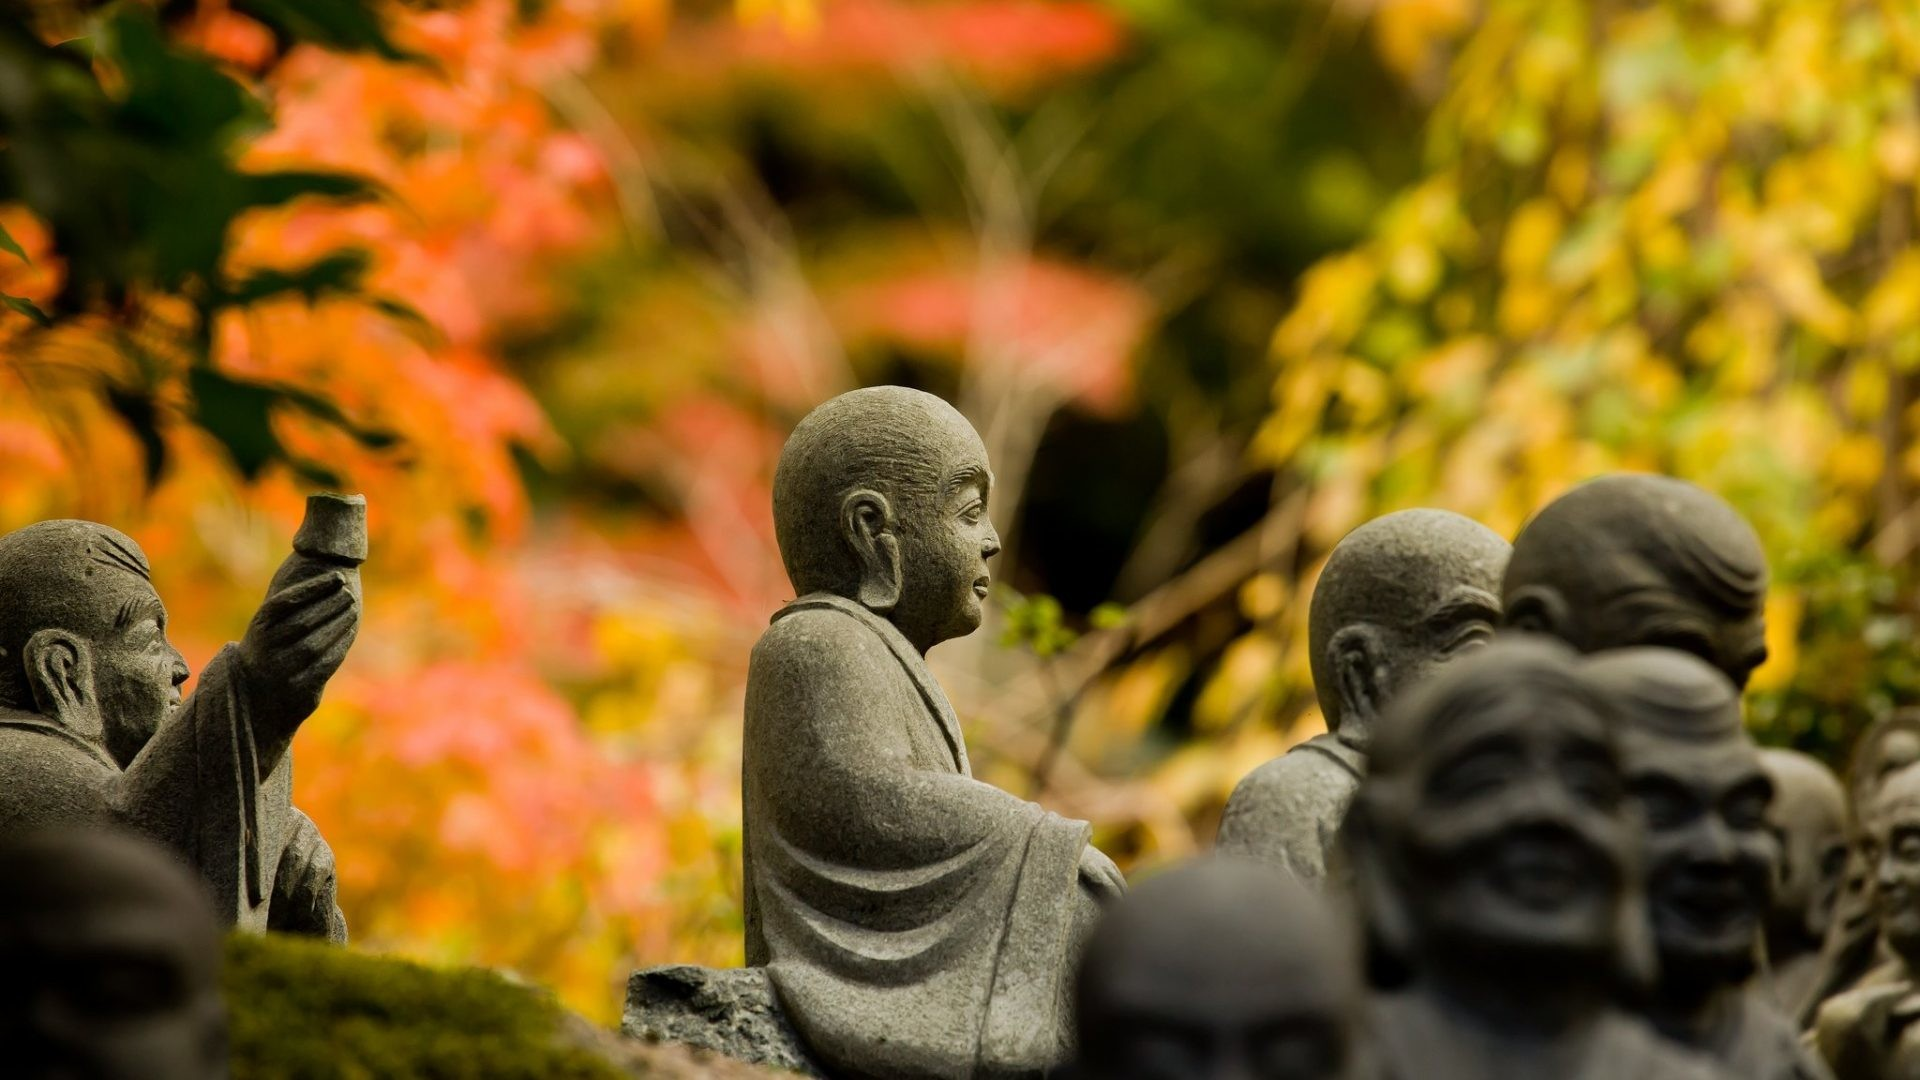 nature-mood-religion-bokeh-garden-buddhism-hd-wallpapers -for-android-mobile-full-screen-1920×1080.jpg (1920×1080) | wallpapers |  Pinterest | Wallpapers …